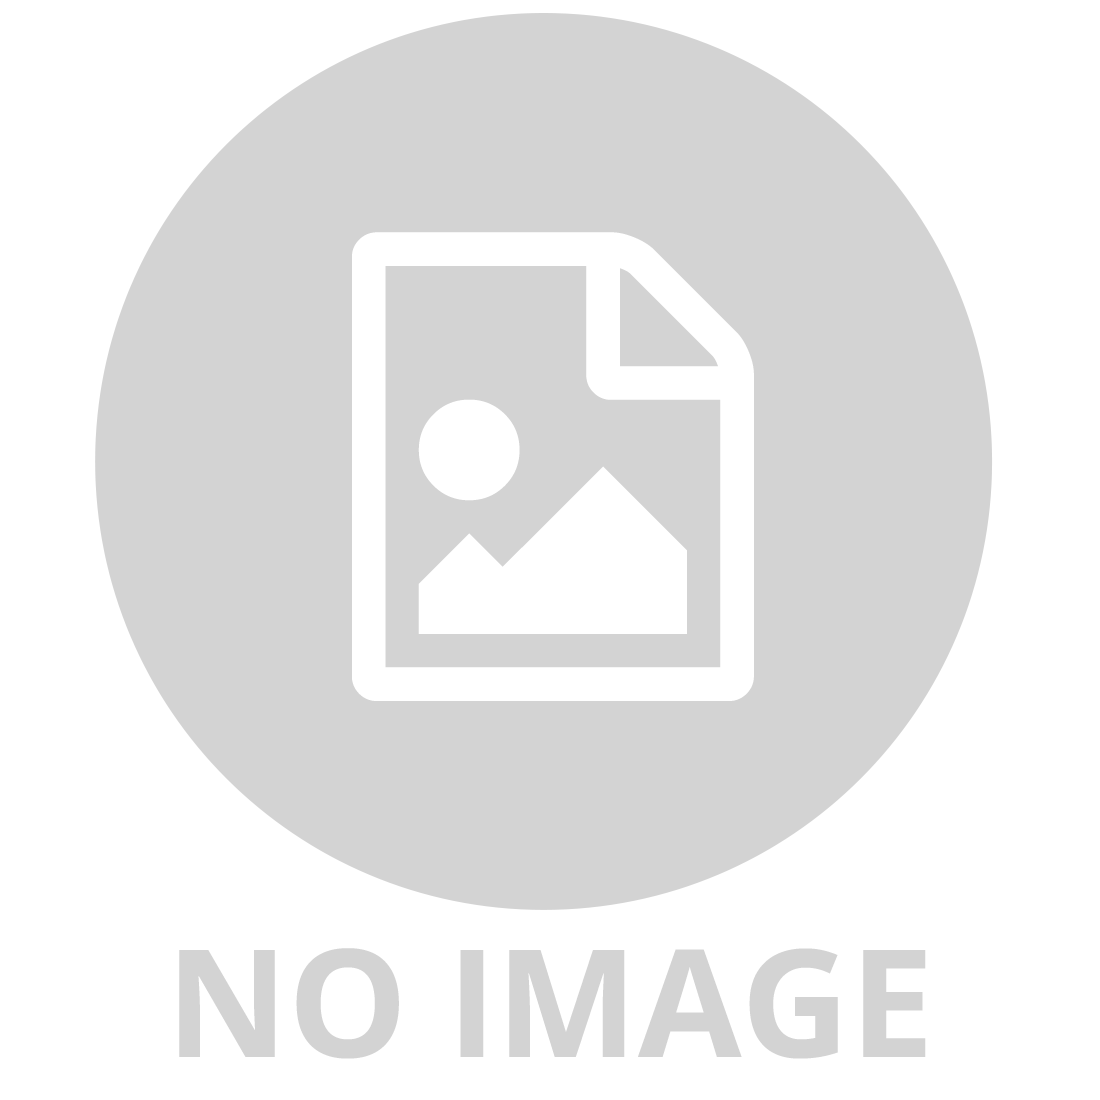 Alecia 1lt LED Spot W/Switch 3K  A19231Bk/SW